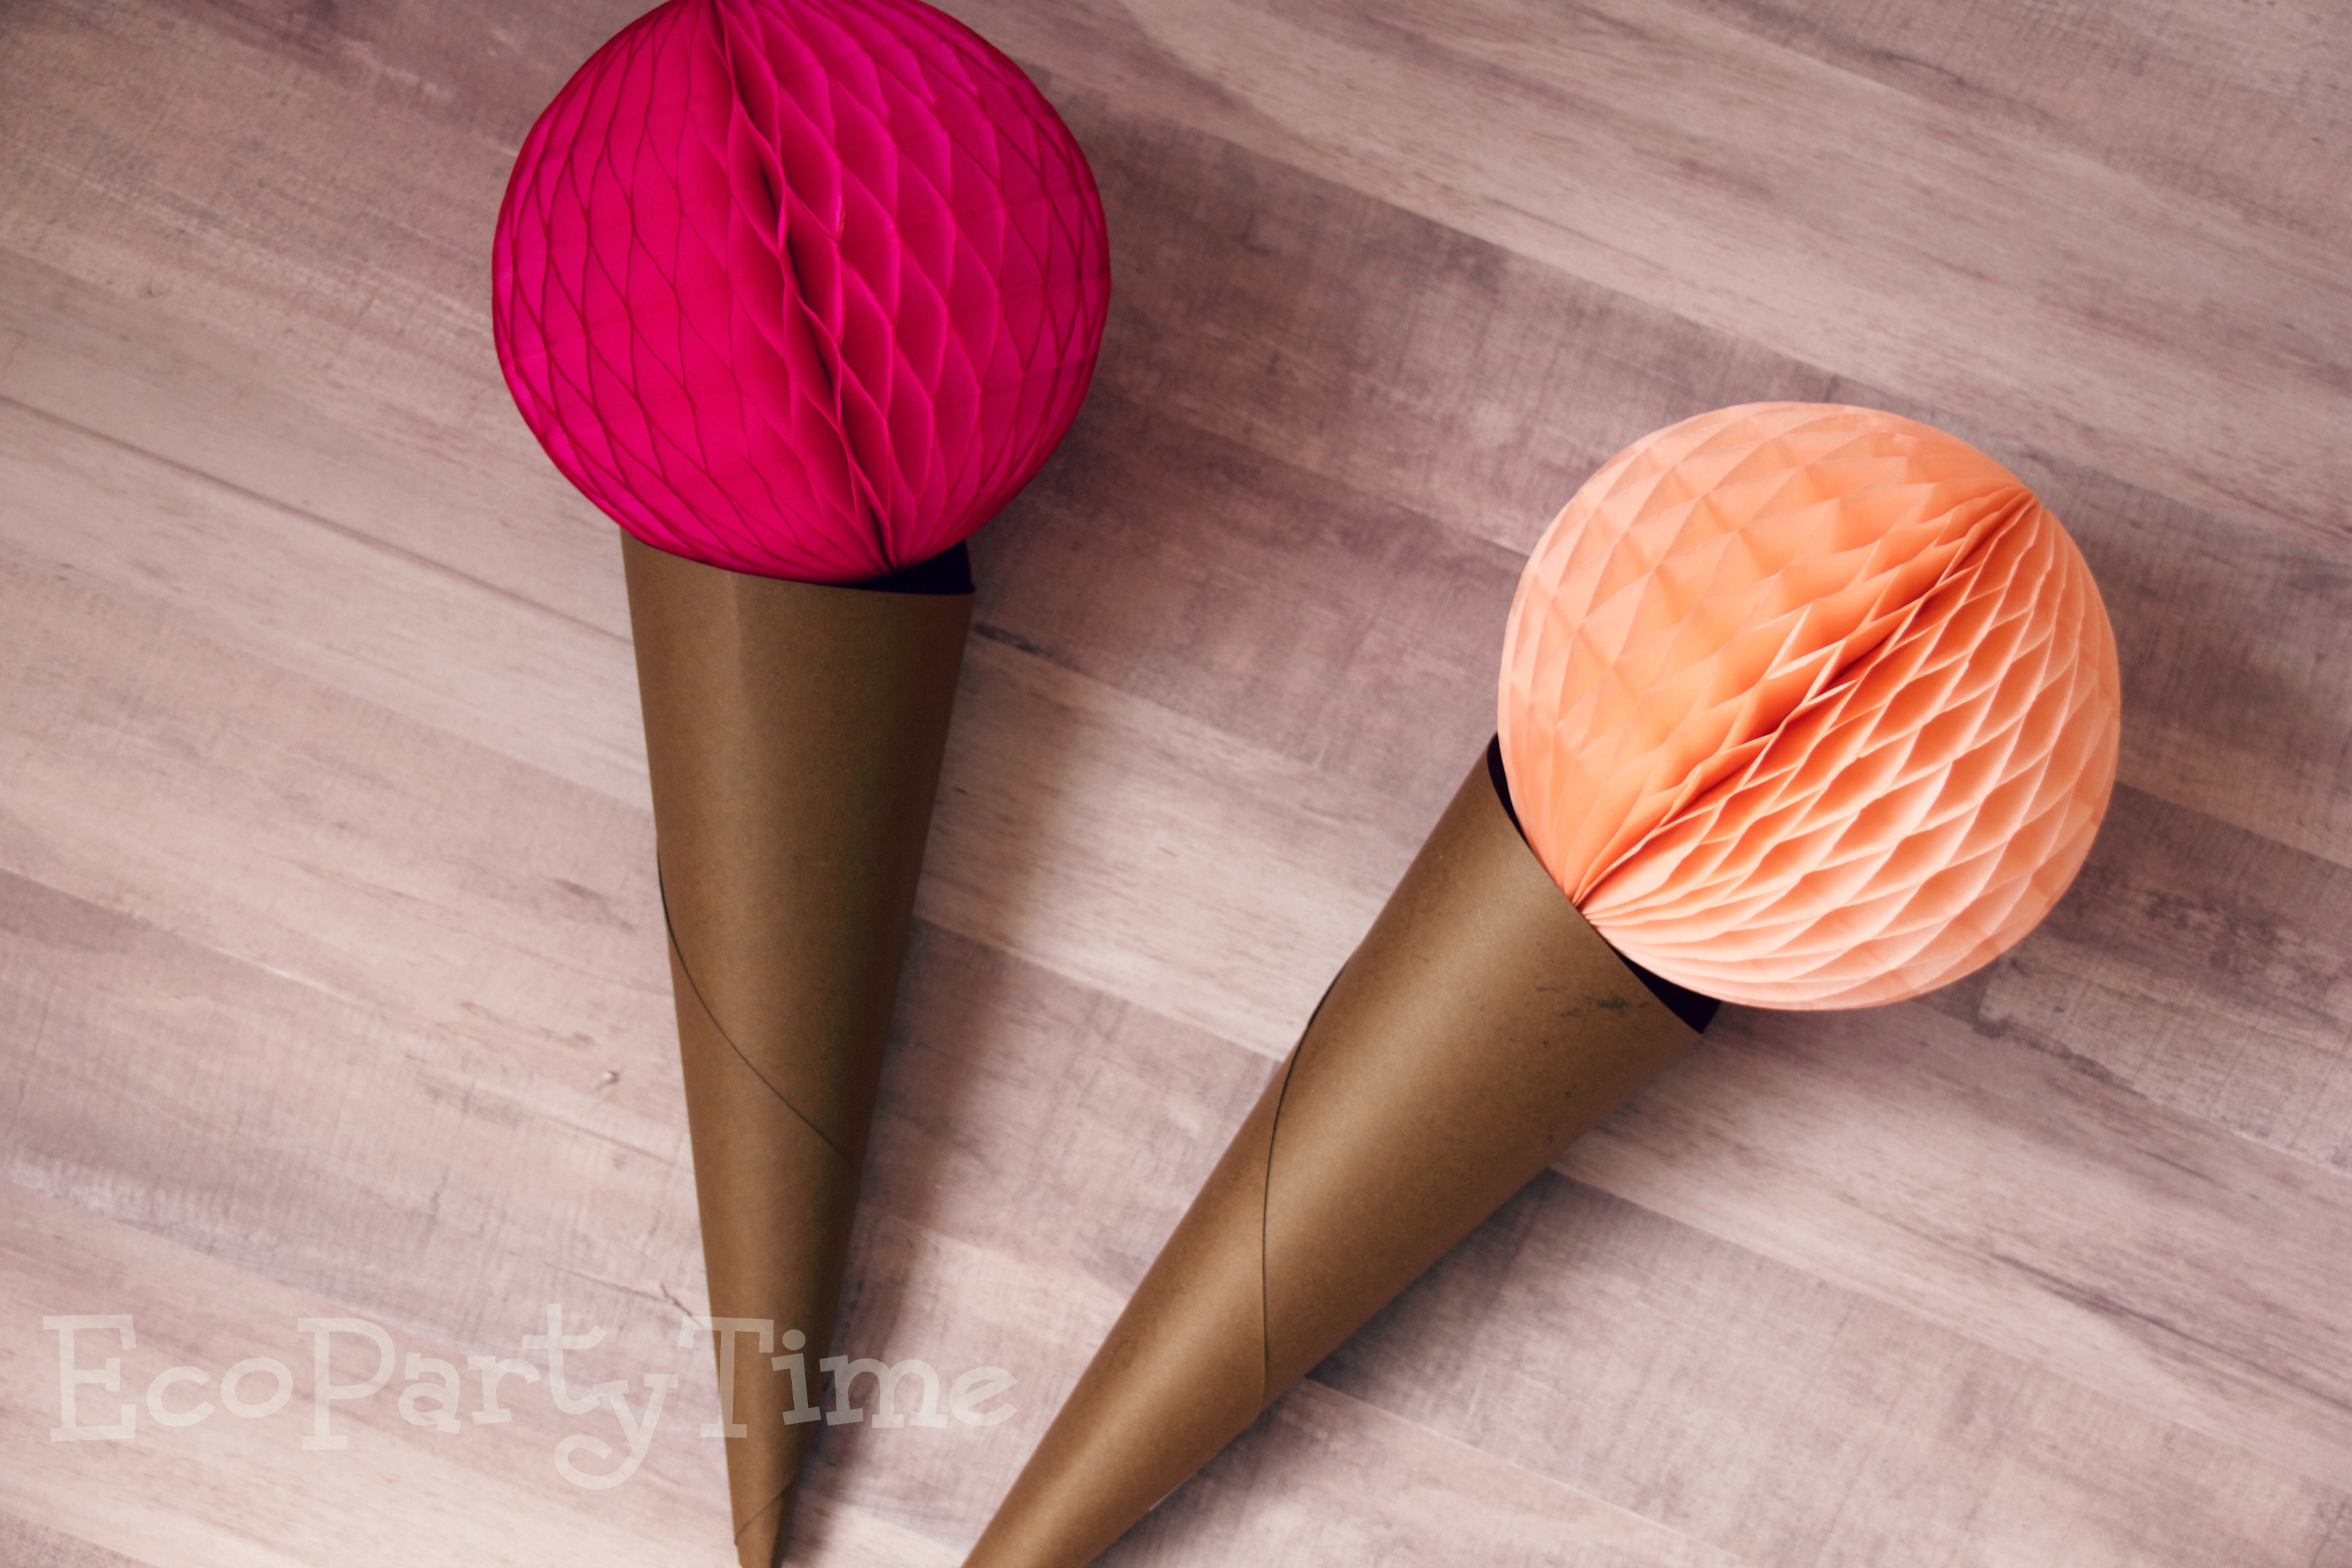 Ecopartytime: Fun Uses for Tissue Balls and Fans